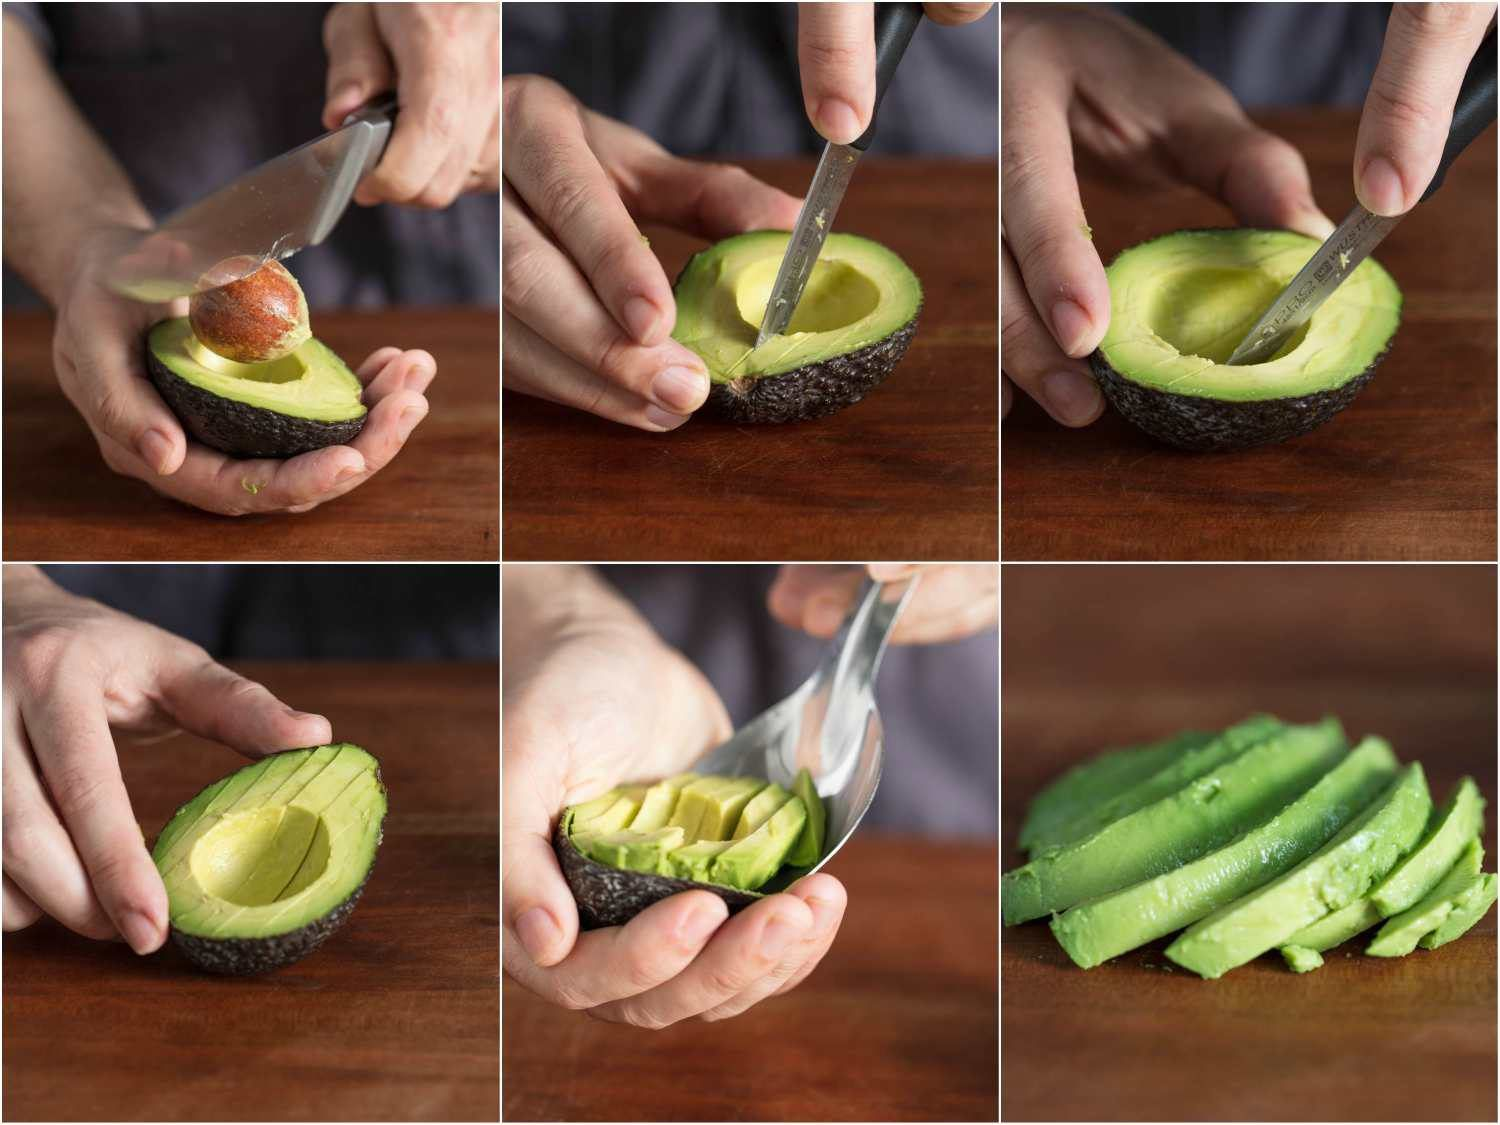 Collage of six photos: removing avocado pit, slicing avocado half, scooping out slices, a fanned-out display of avocado slices